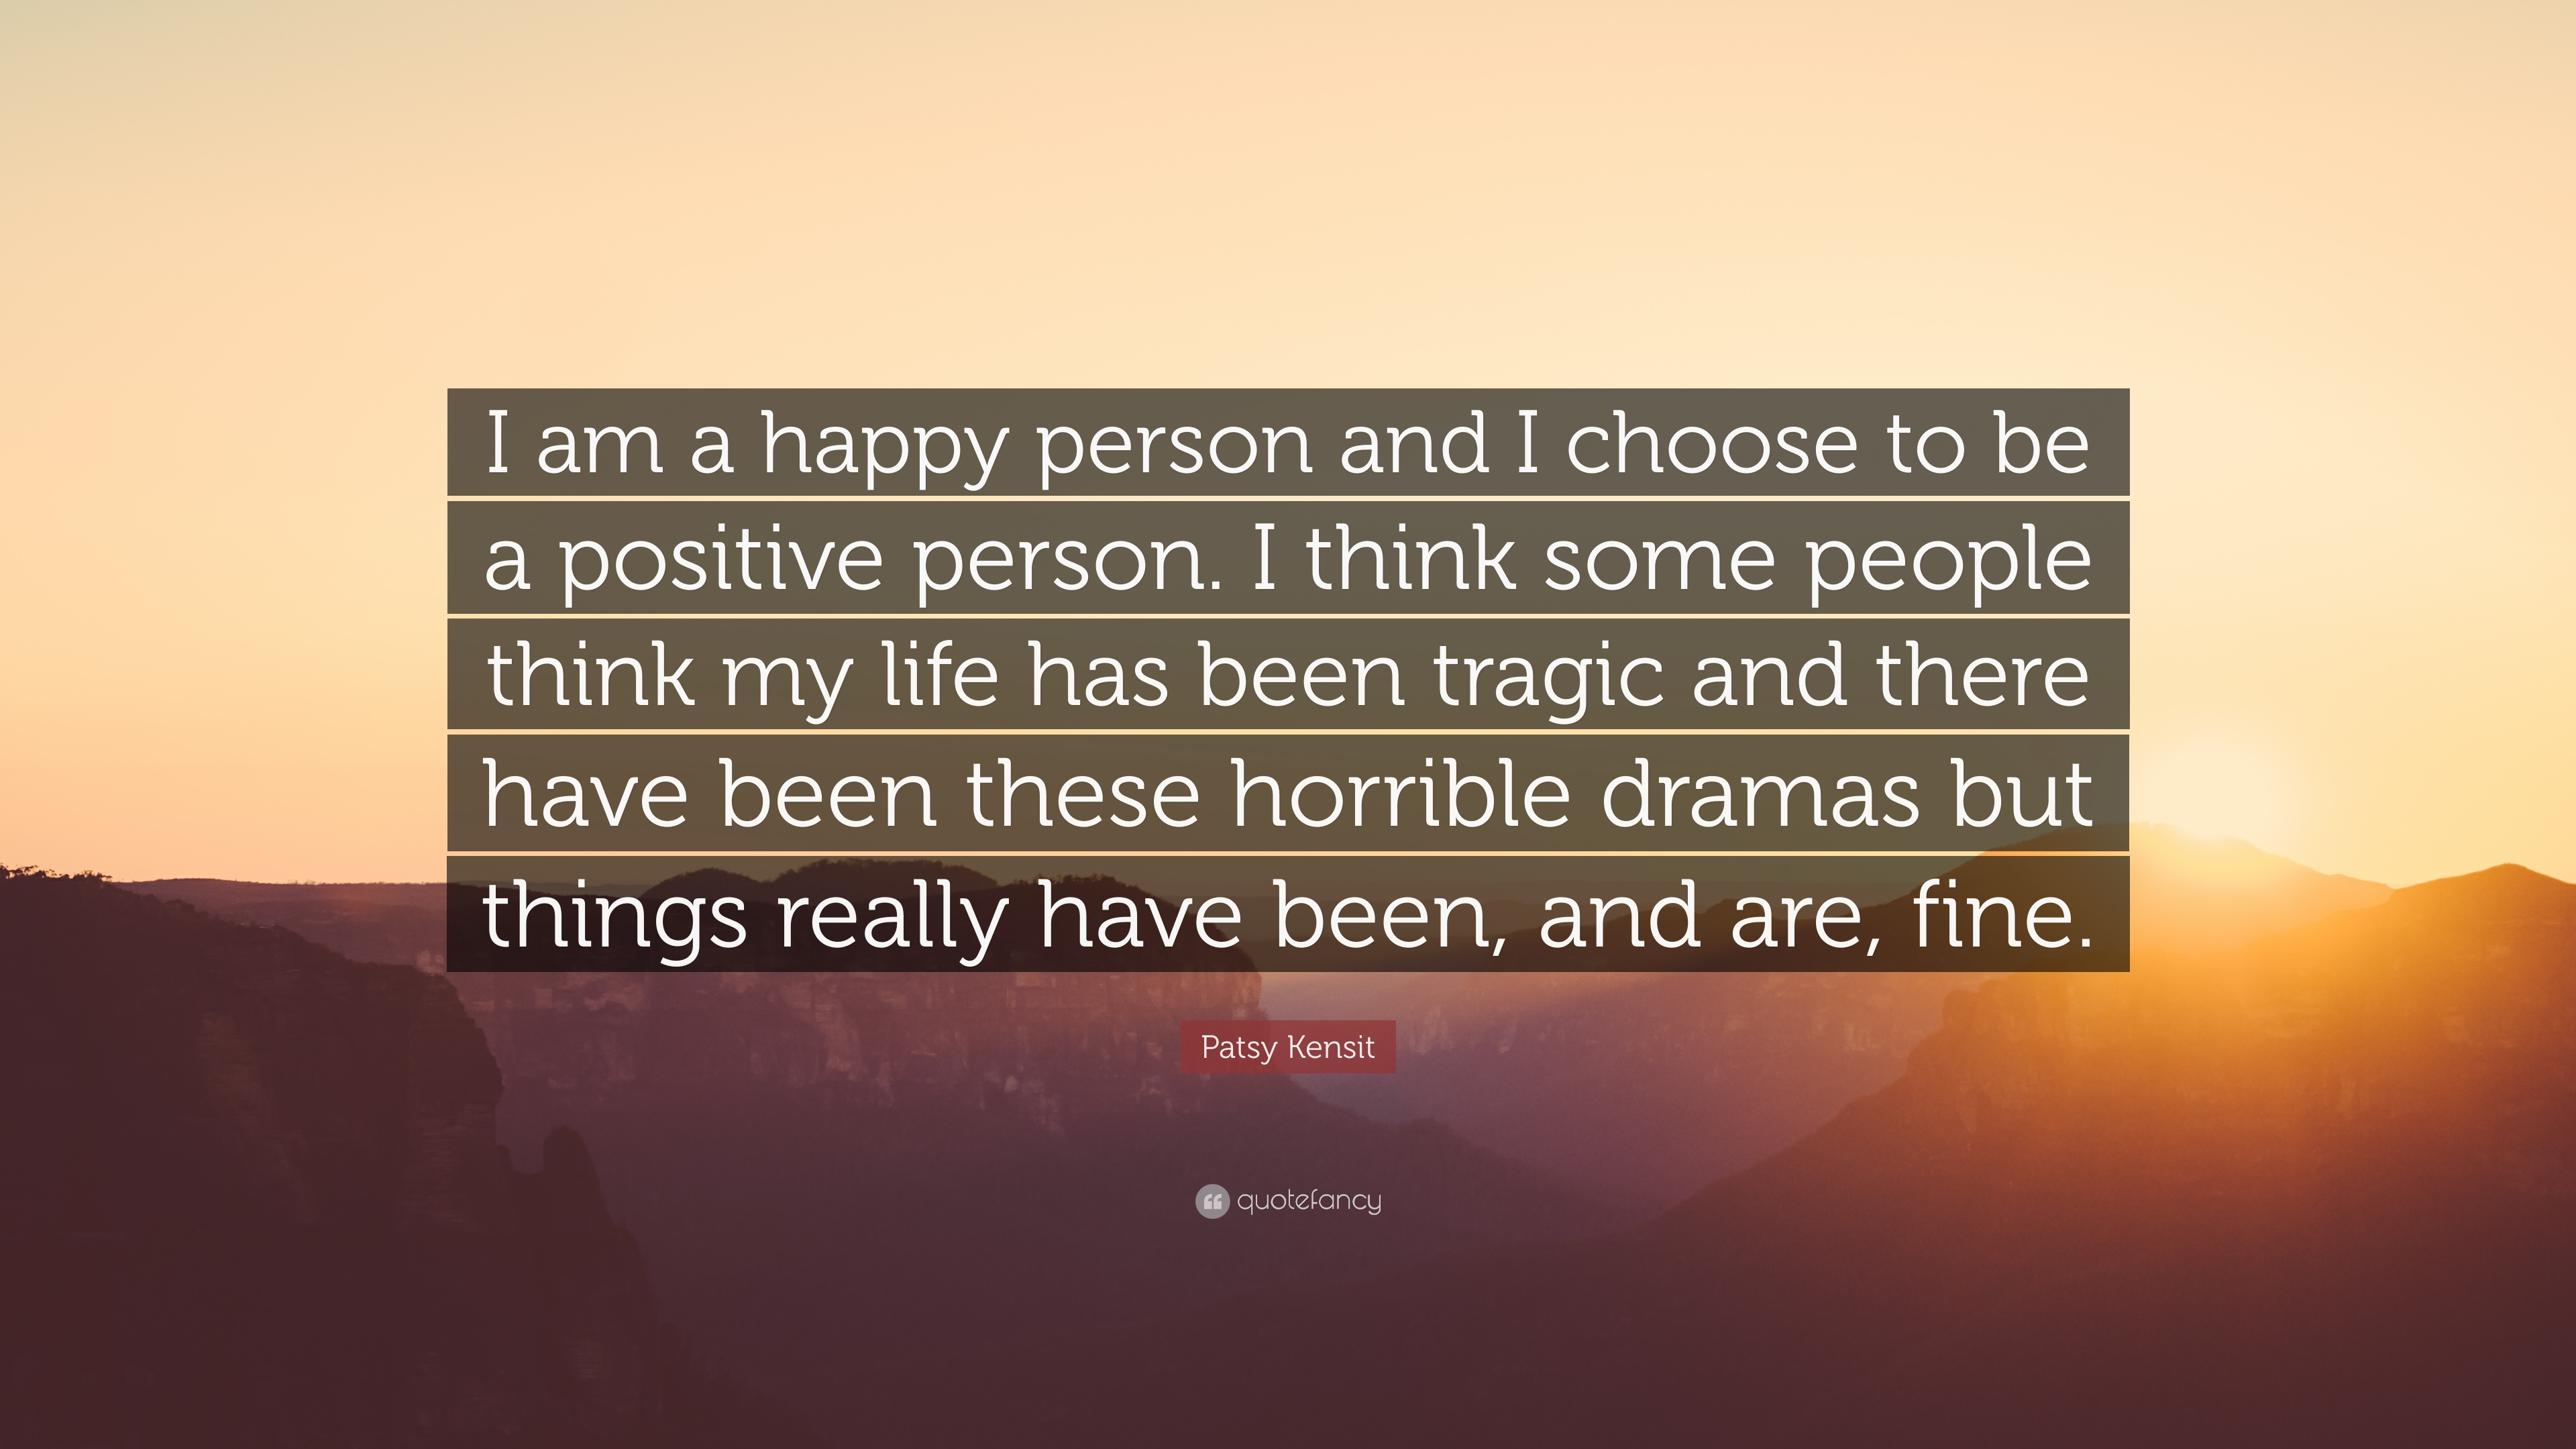 Why is a person happy and how to become happy